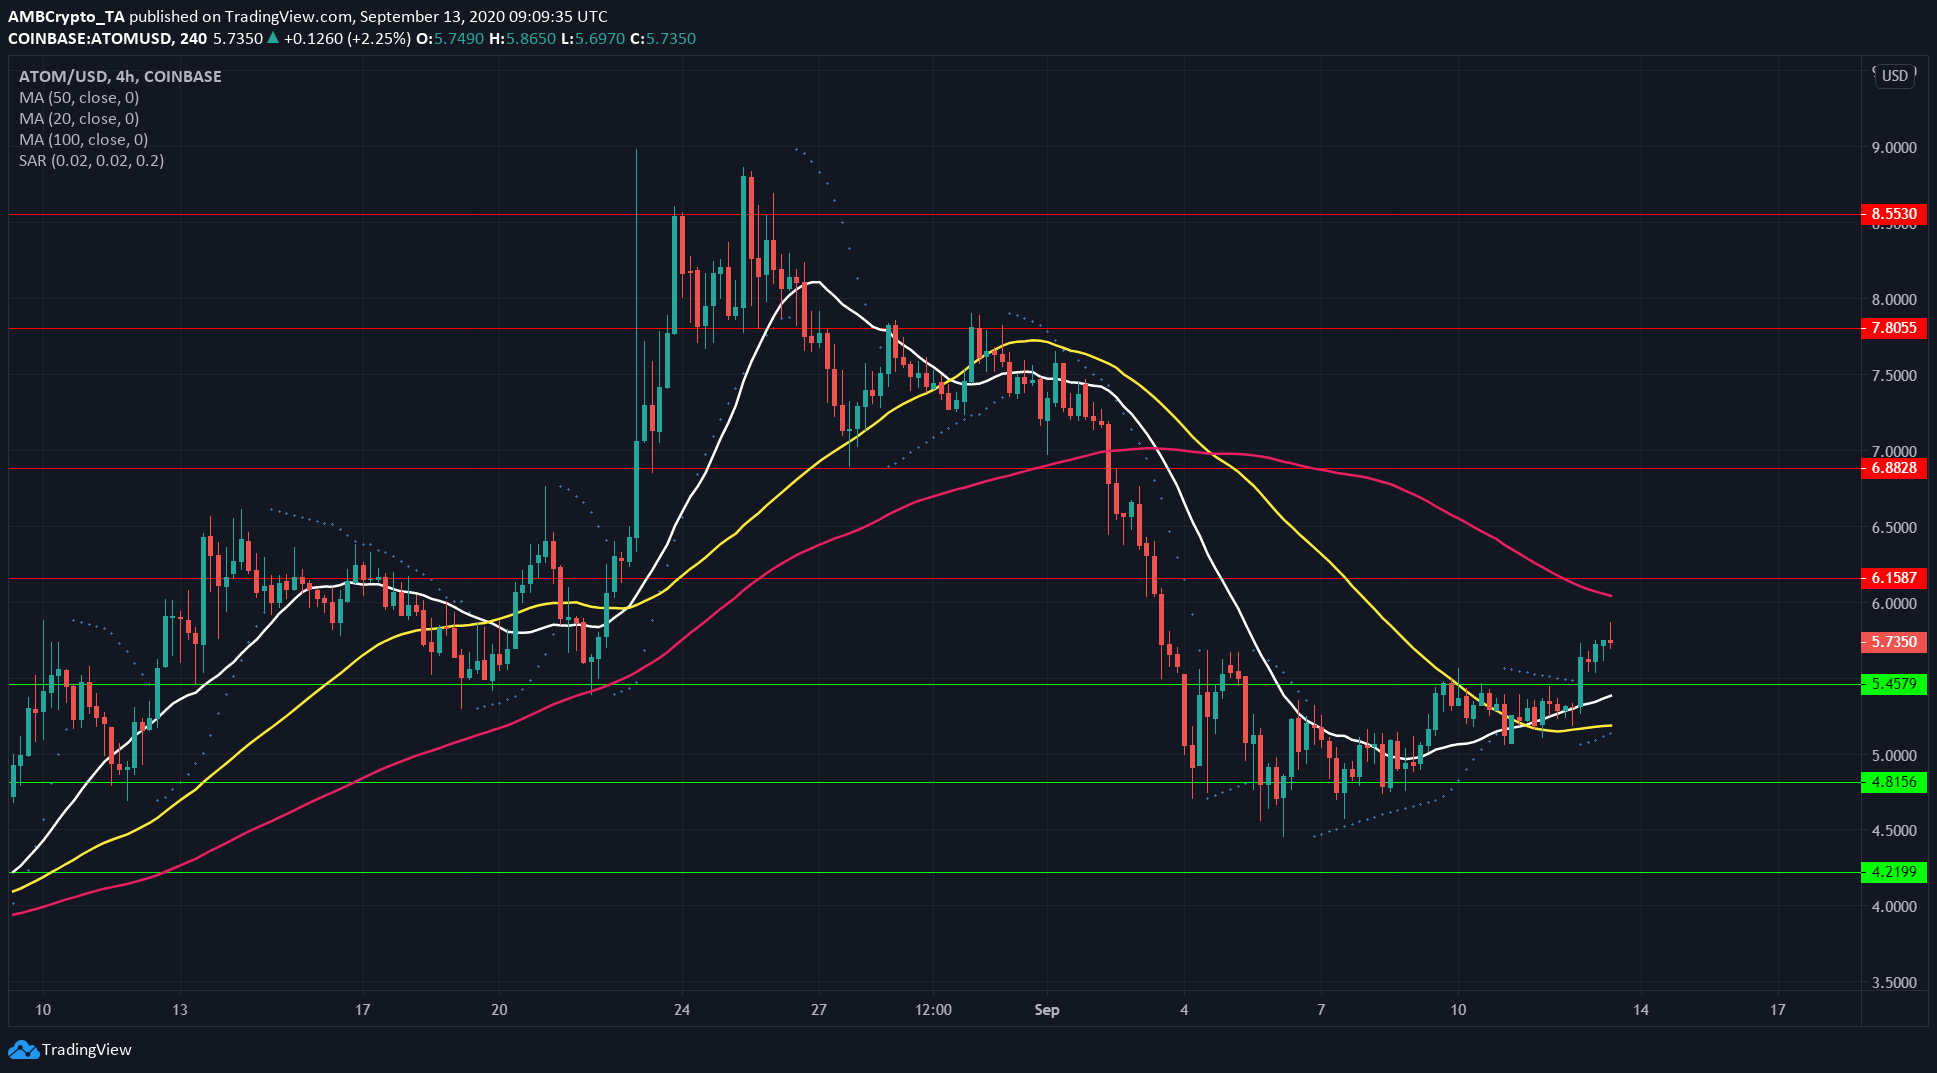 Chainlink, Cosmos, DigiByte Price Analysis: 13 September